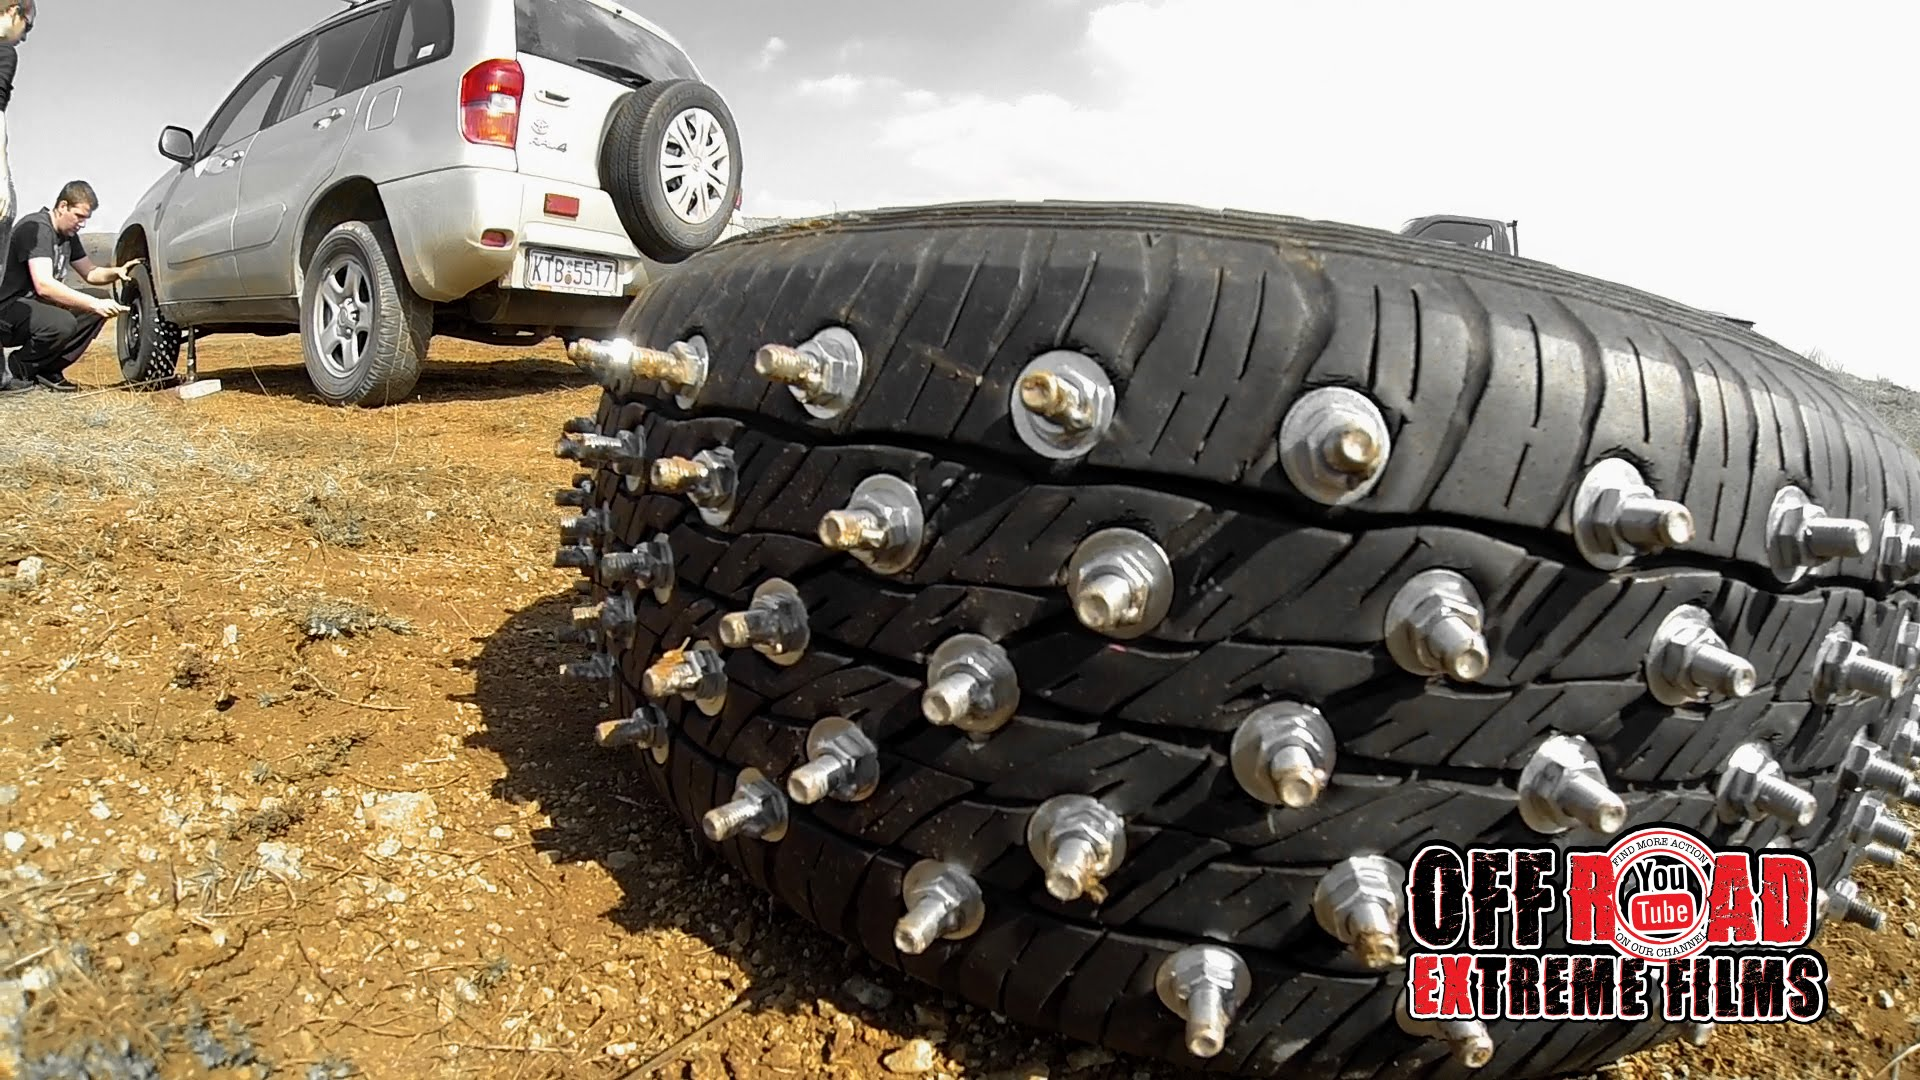 off road fun with studded tires Part I